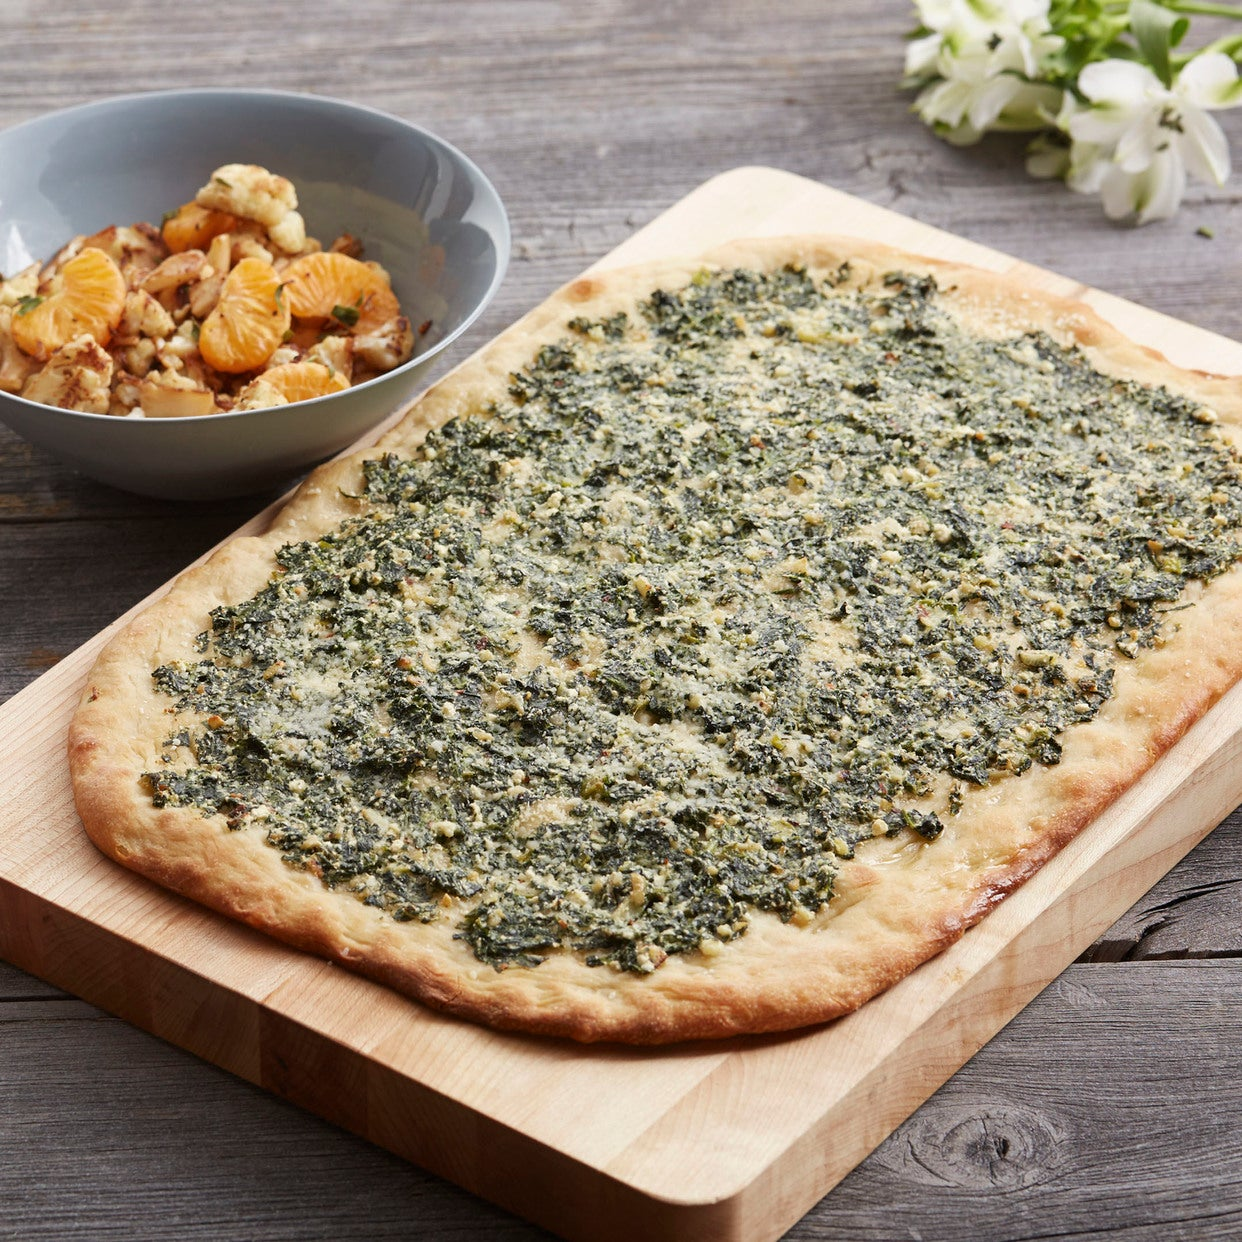 Spinach & Ricotta Pizza with Sautéed Cauliflower & Clementine Salad